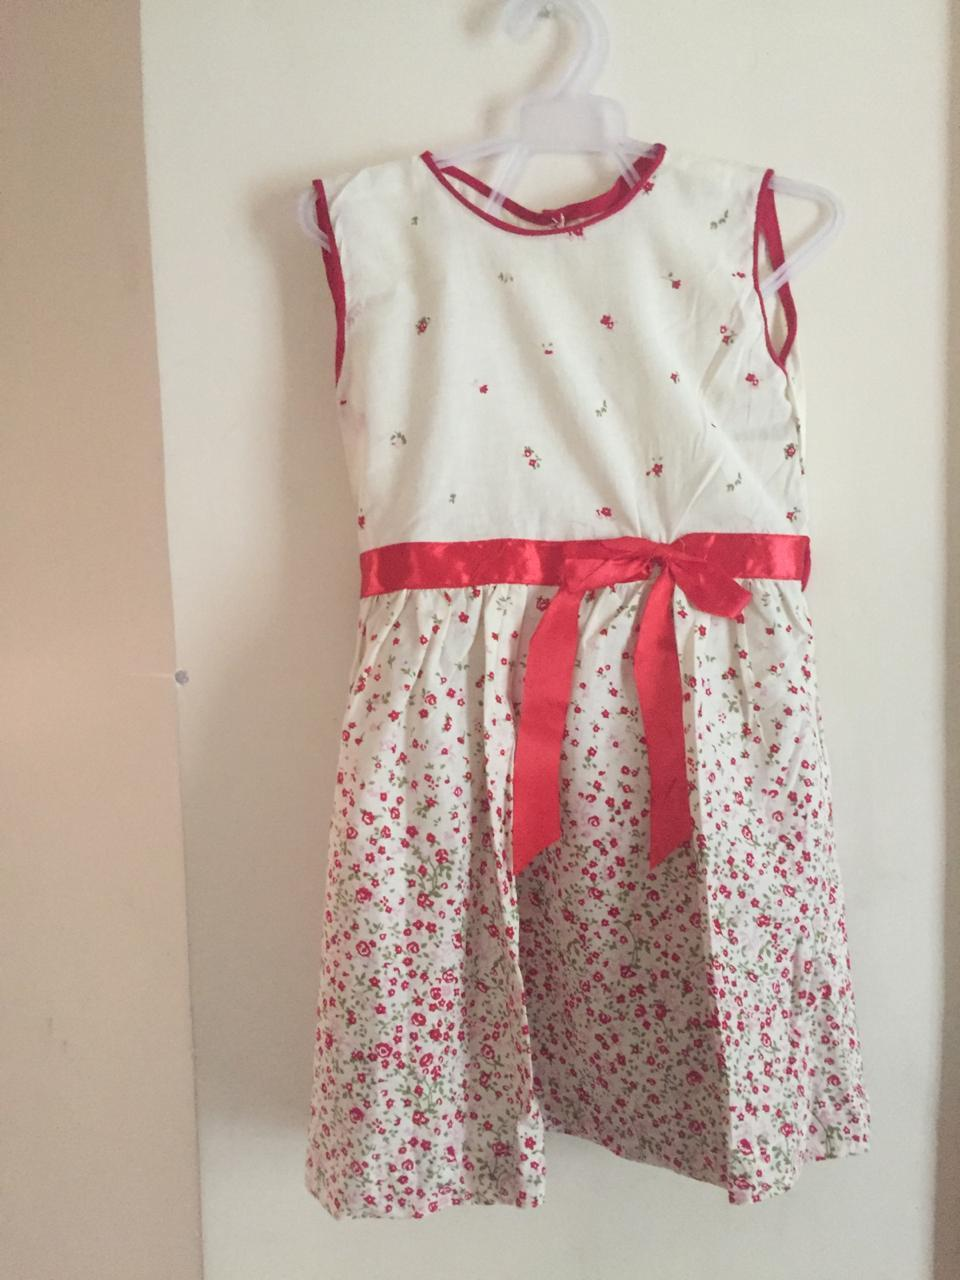 a019f48d2 Clothing - Buy Clothing at Best Price in Pakistan | www.daraz.pk